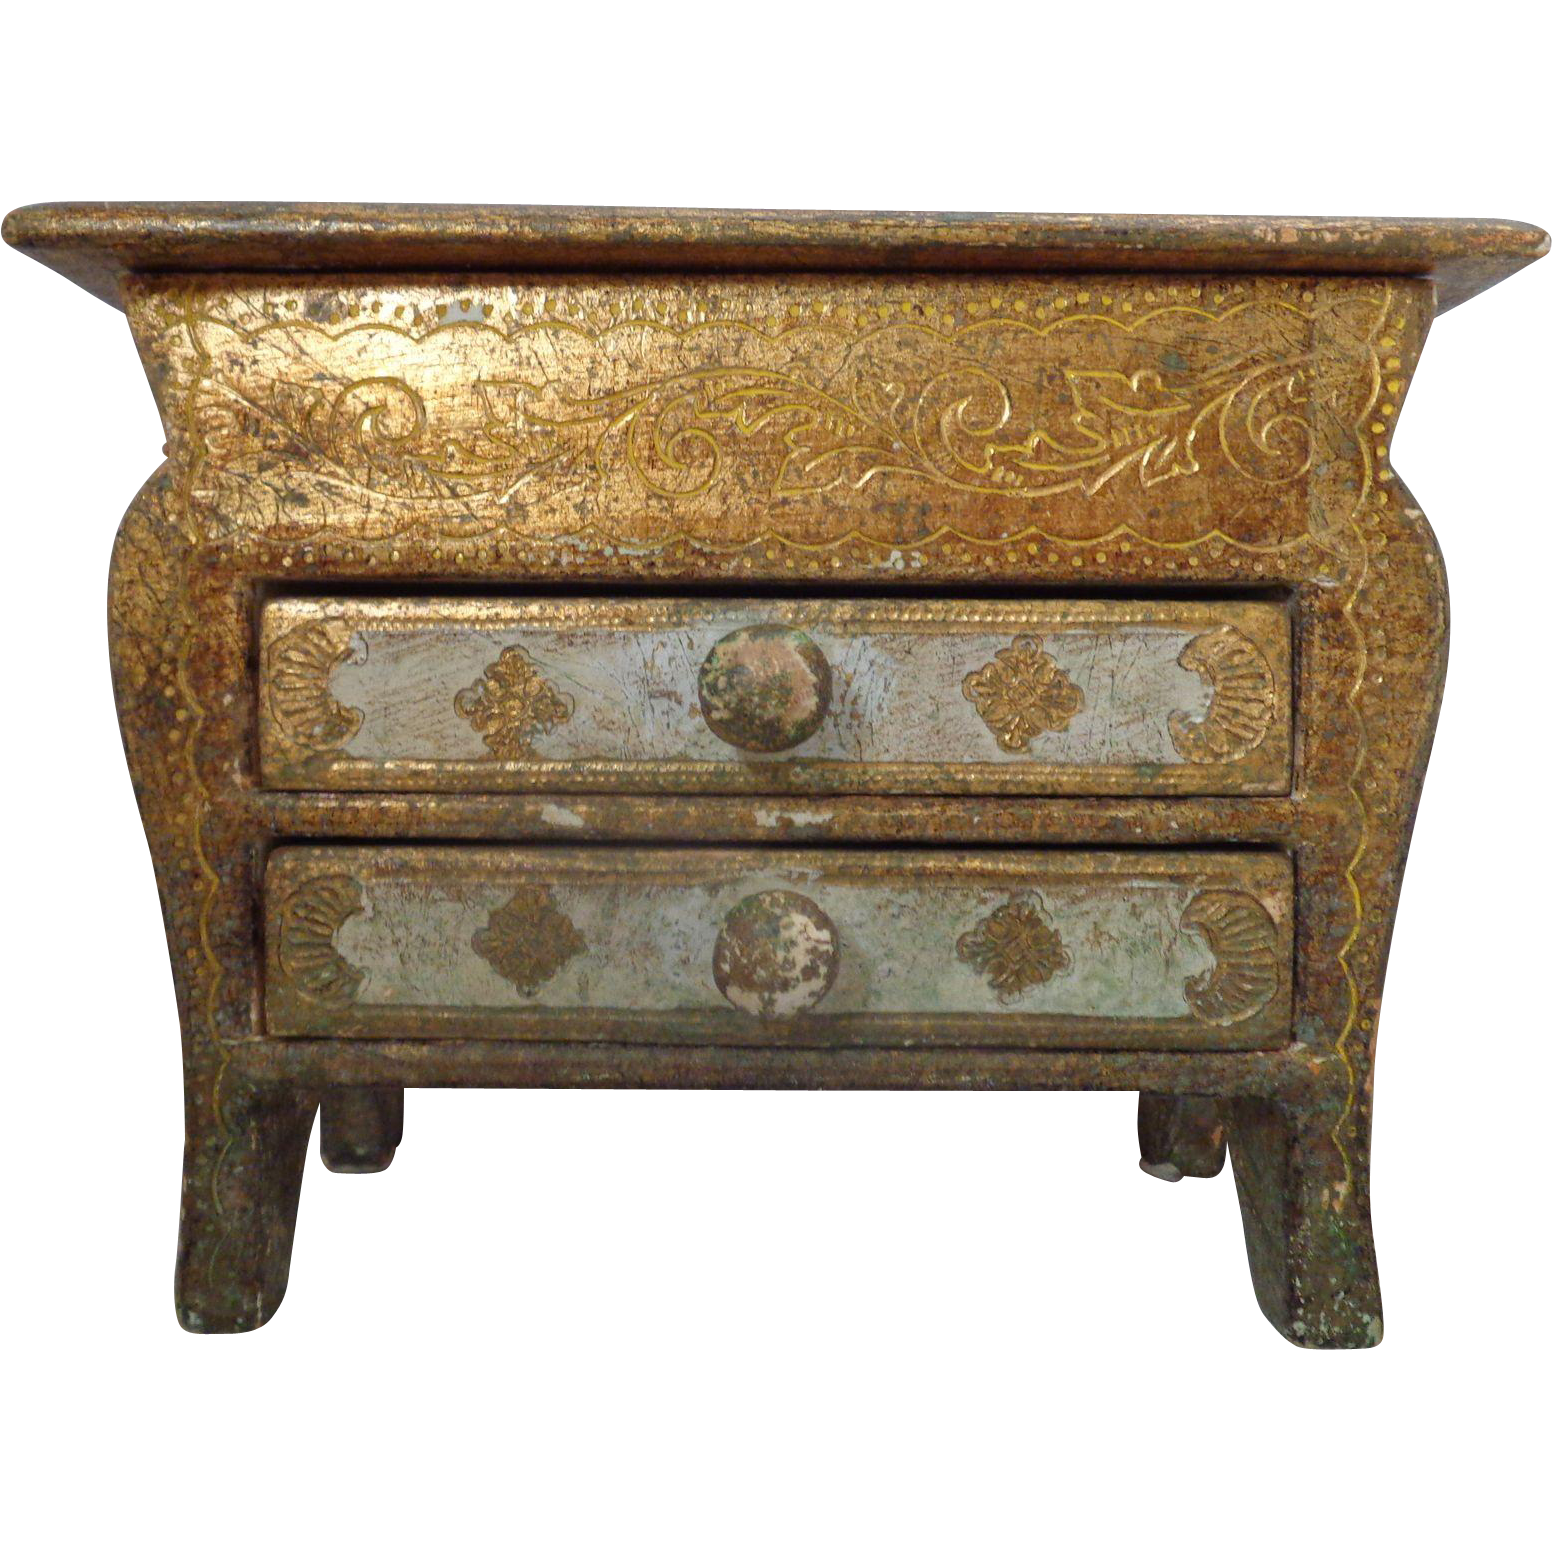 Italian Gold Florentine Miniature Bombay Chest Hand Painted Footed From Thepo